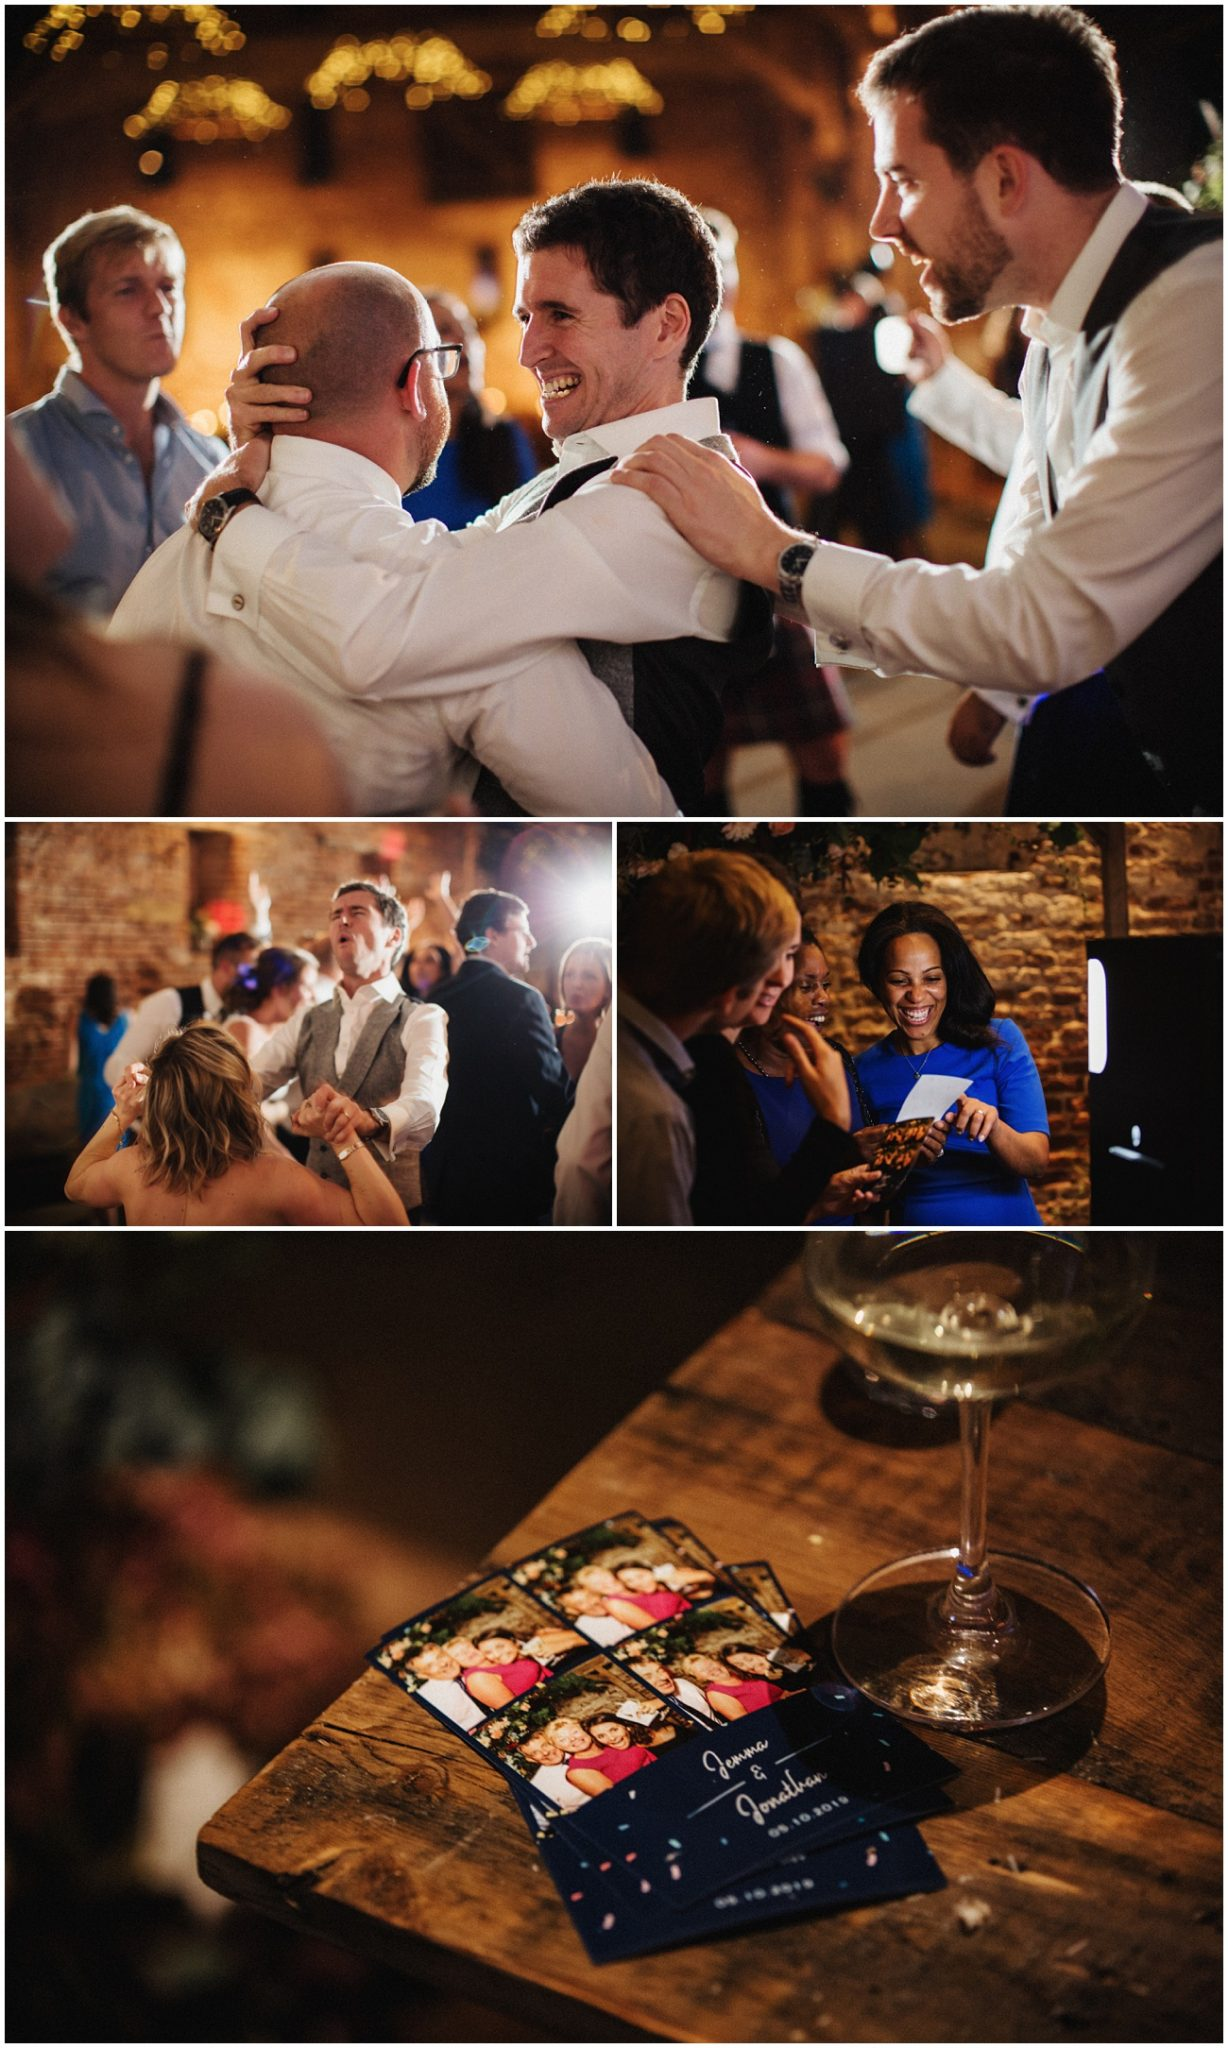 Dance pictures of wedding guests and people using the photo booth